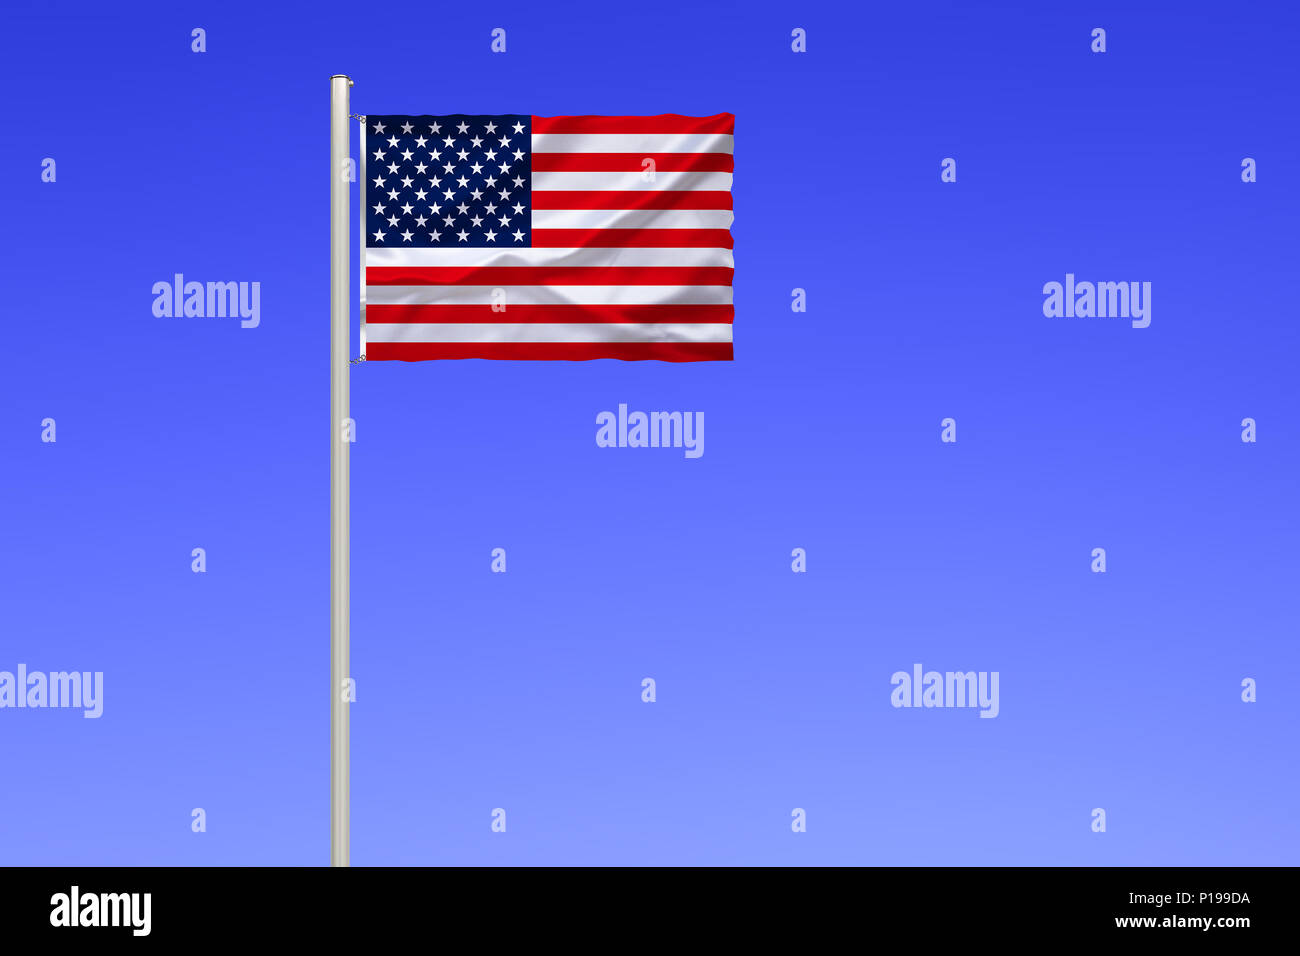 flag of the united states of america united states flagge von